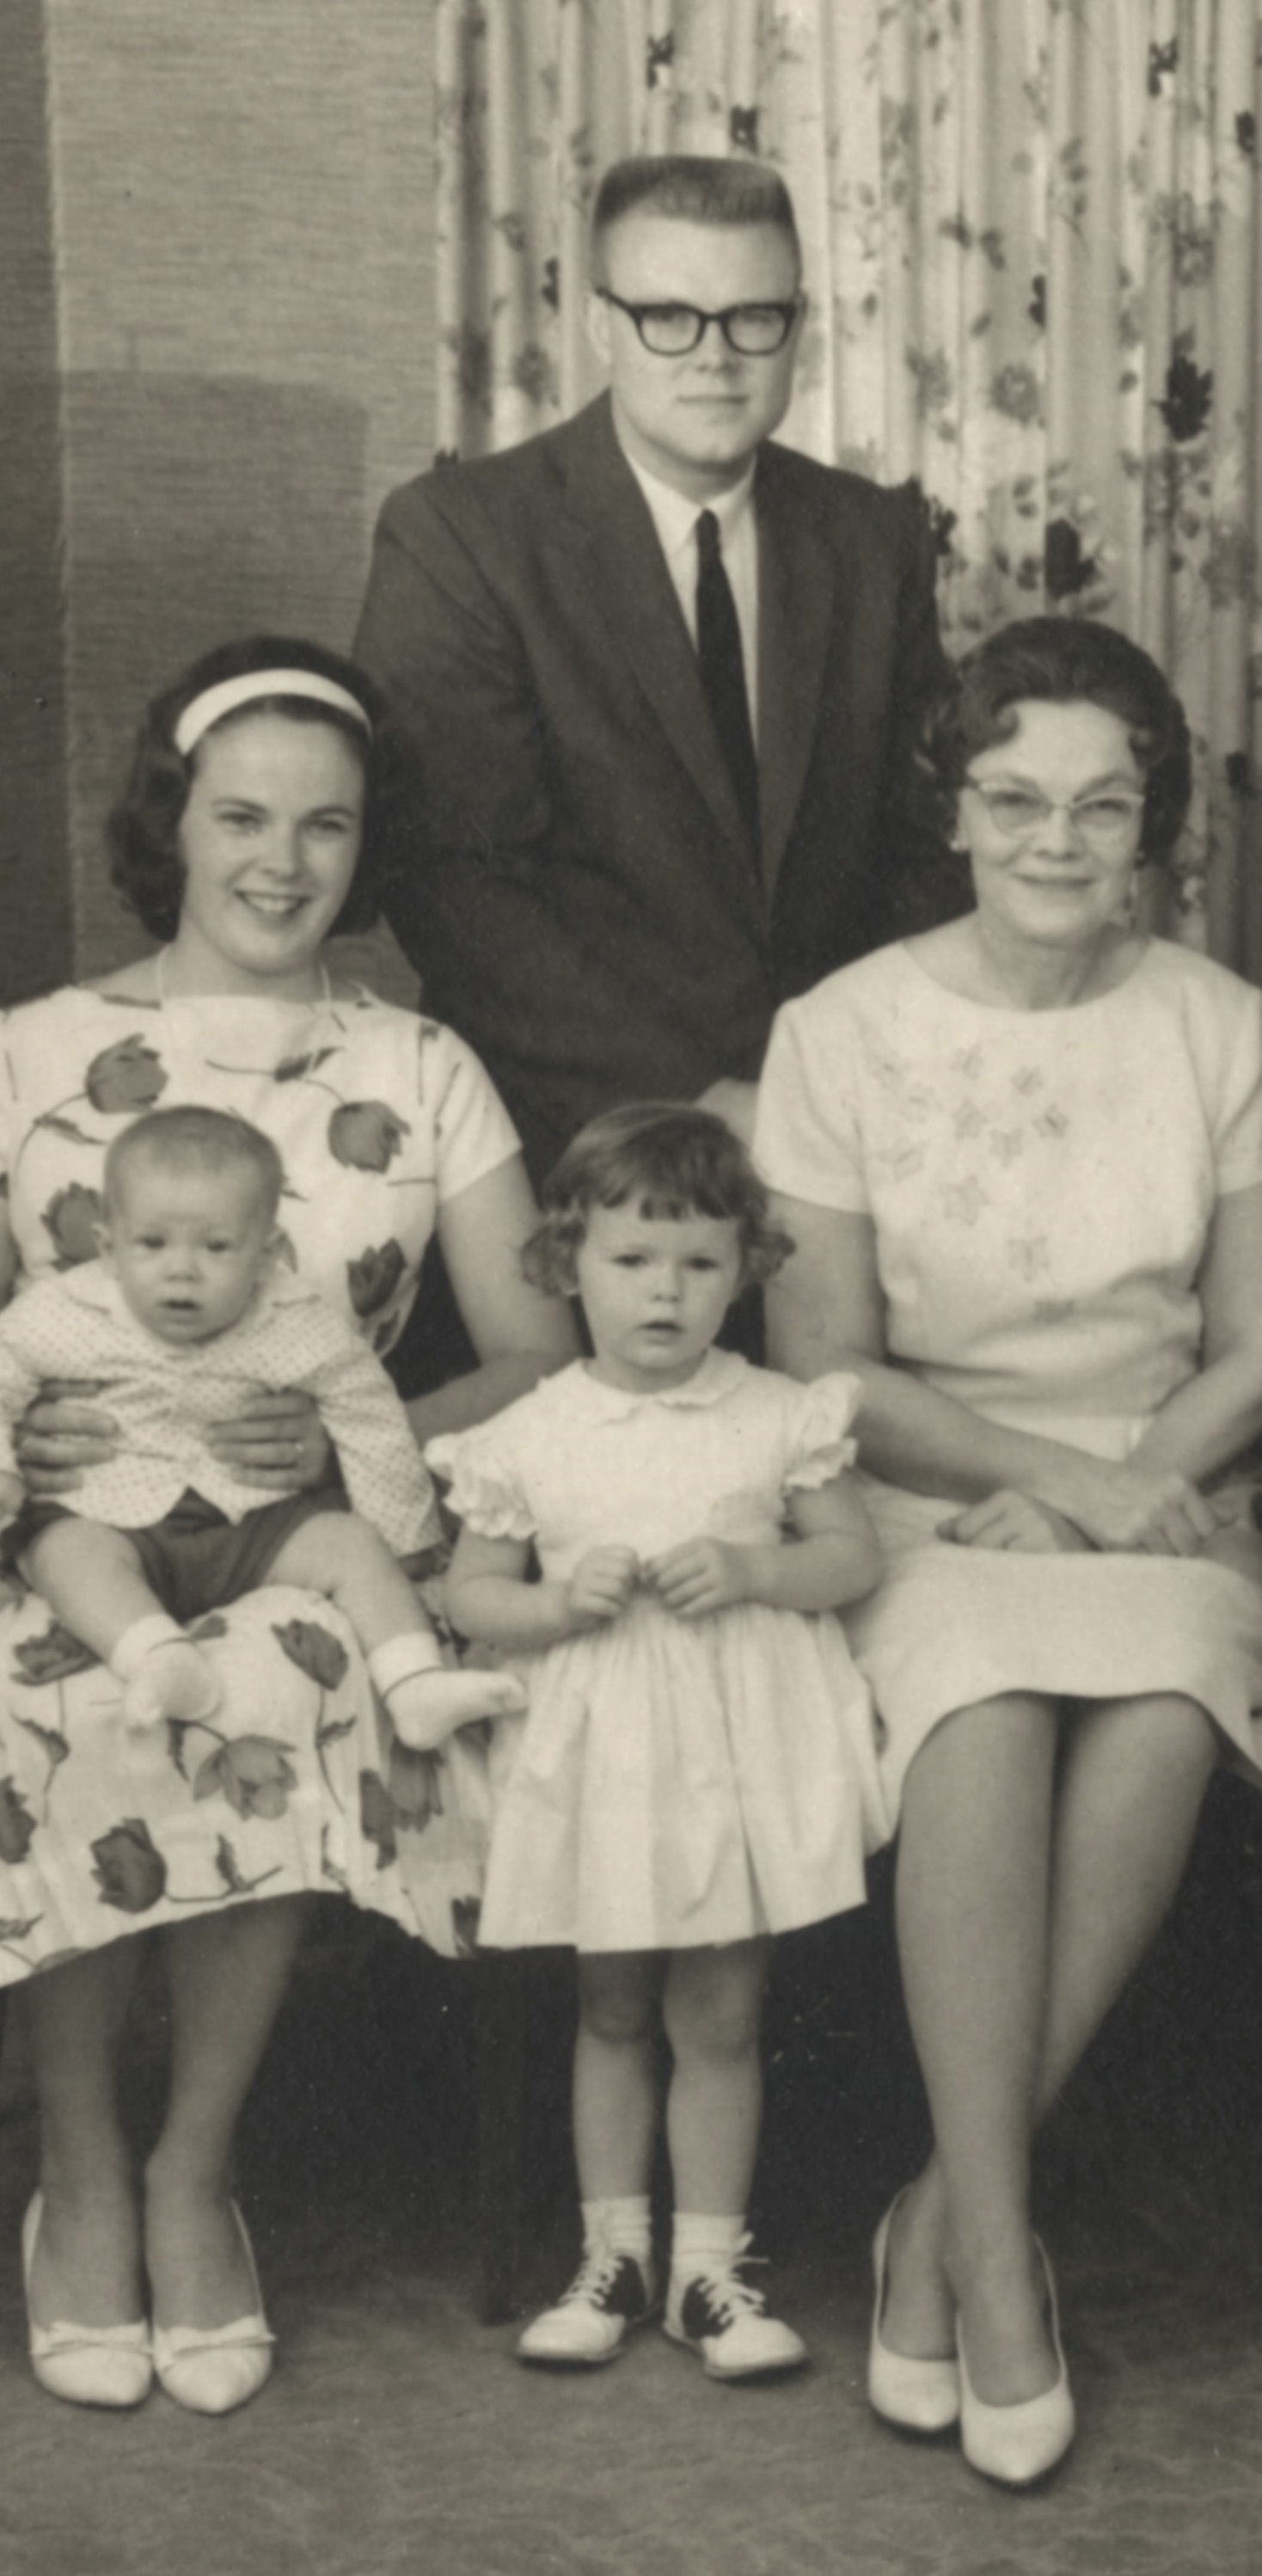 """Jim Dowd, in the back; Betty Dowd with Ken Dowd in her lap;Debbie Dowd (now Clinebell) standing center; Martha Combrink Dowd (Jim's mother, my grandmother) at right. This is a detail from a much larger family photograph shot at 1021 Oxford in 1965. That conservative-looking guy in the back was a freedom rider in the South and on the scene for the March on Washington. He heard Martin Luther King Jr.'s """"I Have a Dream"""" speech live. (The audio was garbled and difficult to follow.)"""